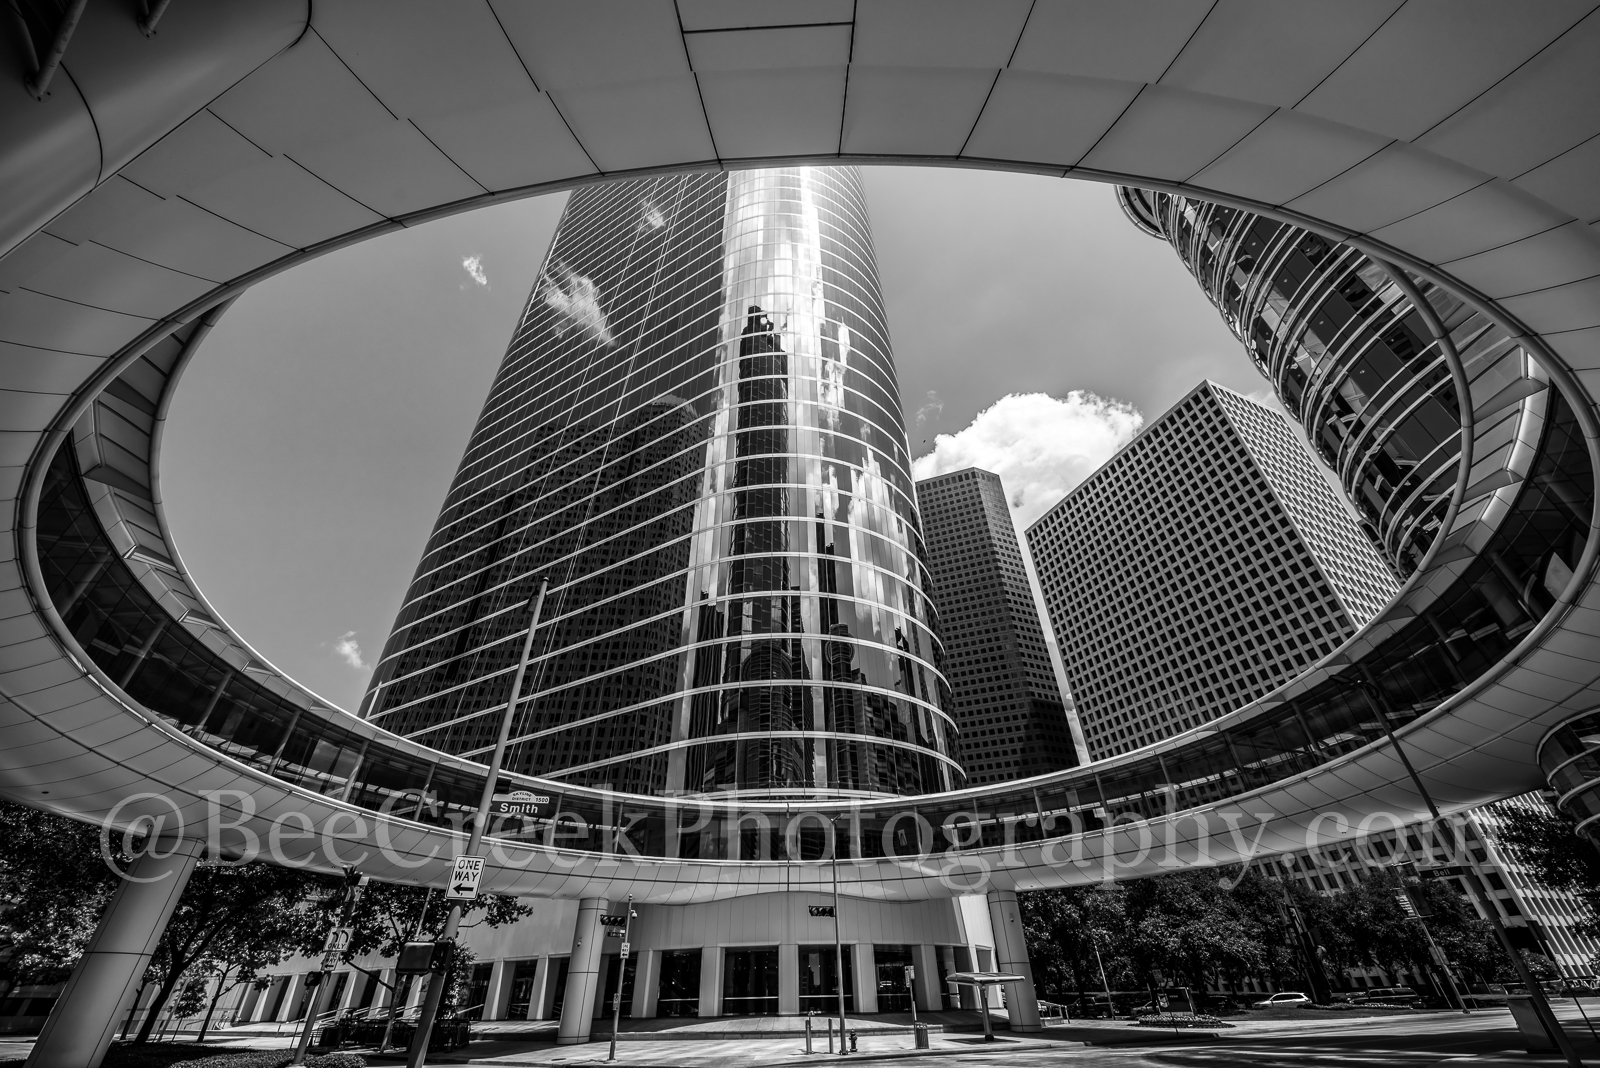 Houston, architecture, architectural, Chevron, skyscraper, black and white, bw, skybridge, cityscape, downtown, 1400 smith st, buildings, skywalk, towers, high rise, modern, city, , photo